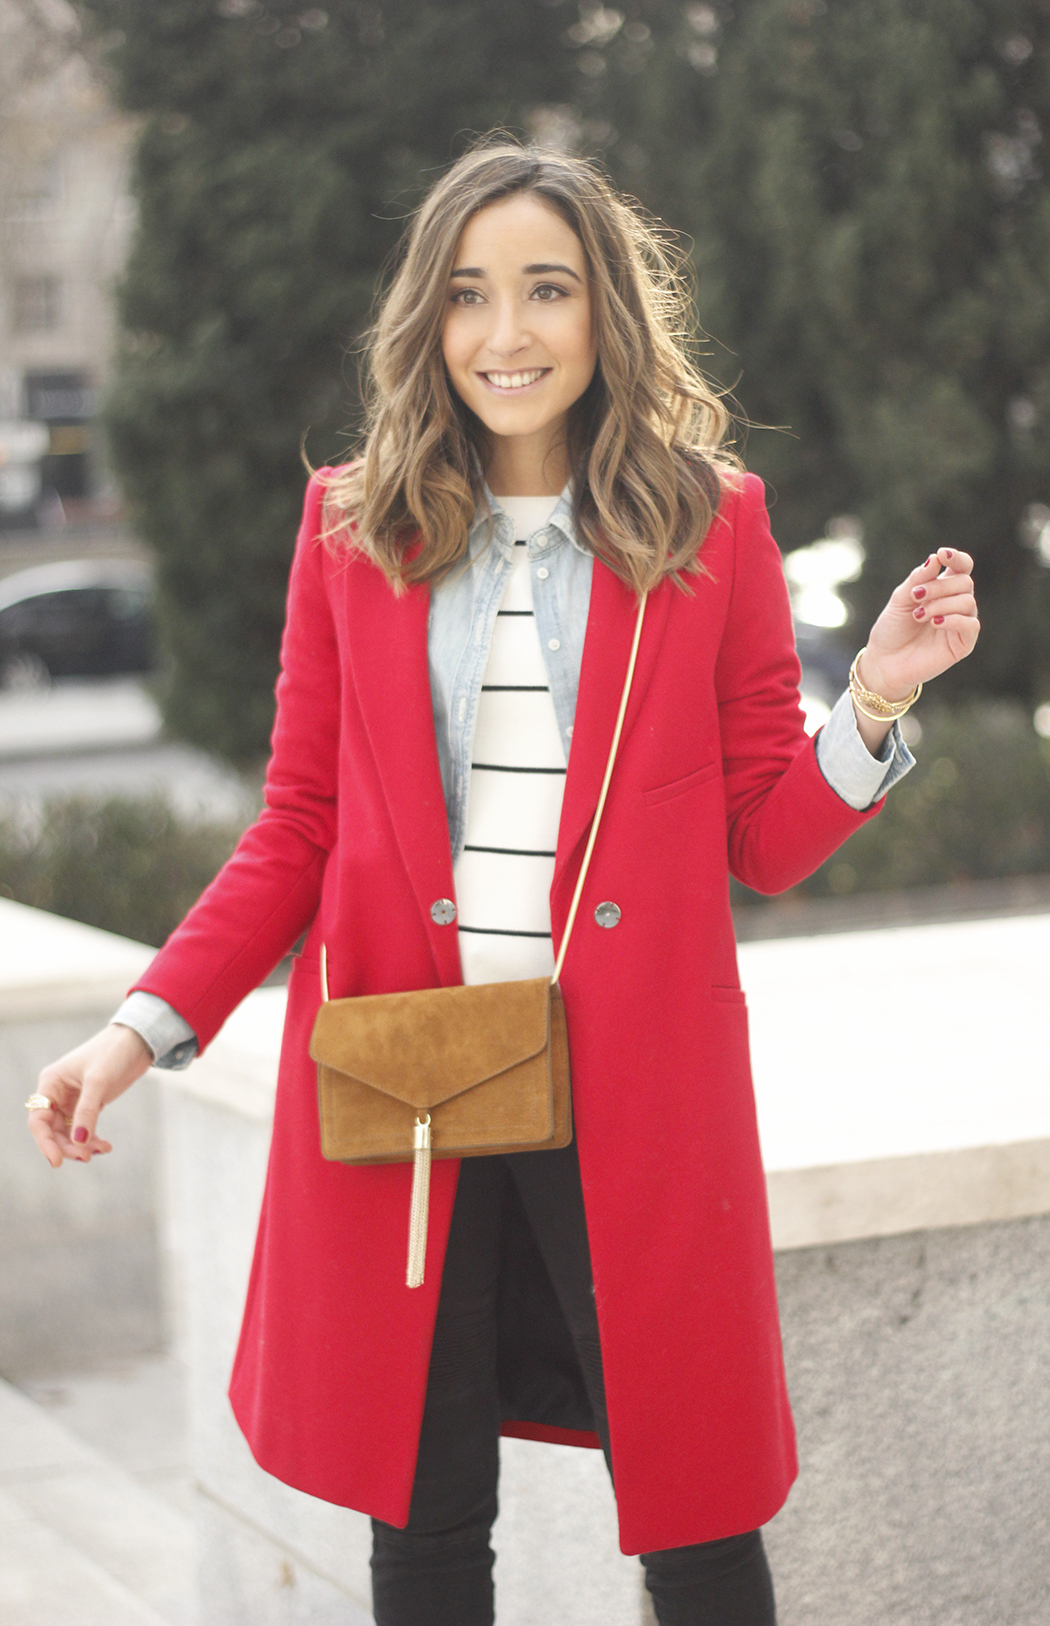 Red Coat Stripped sweater denim shirt nude heels outfit style uterqüe bag11